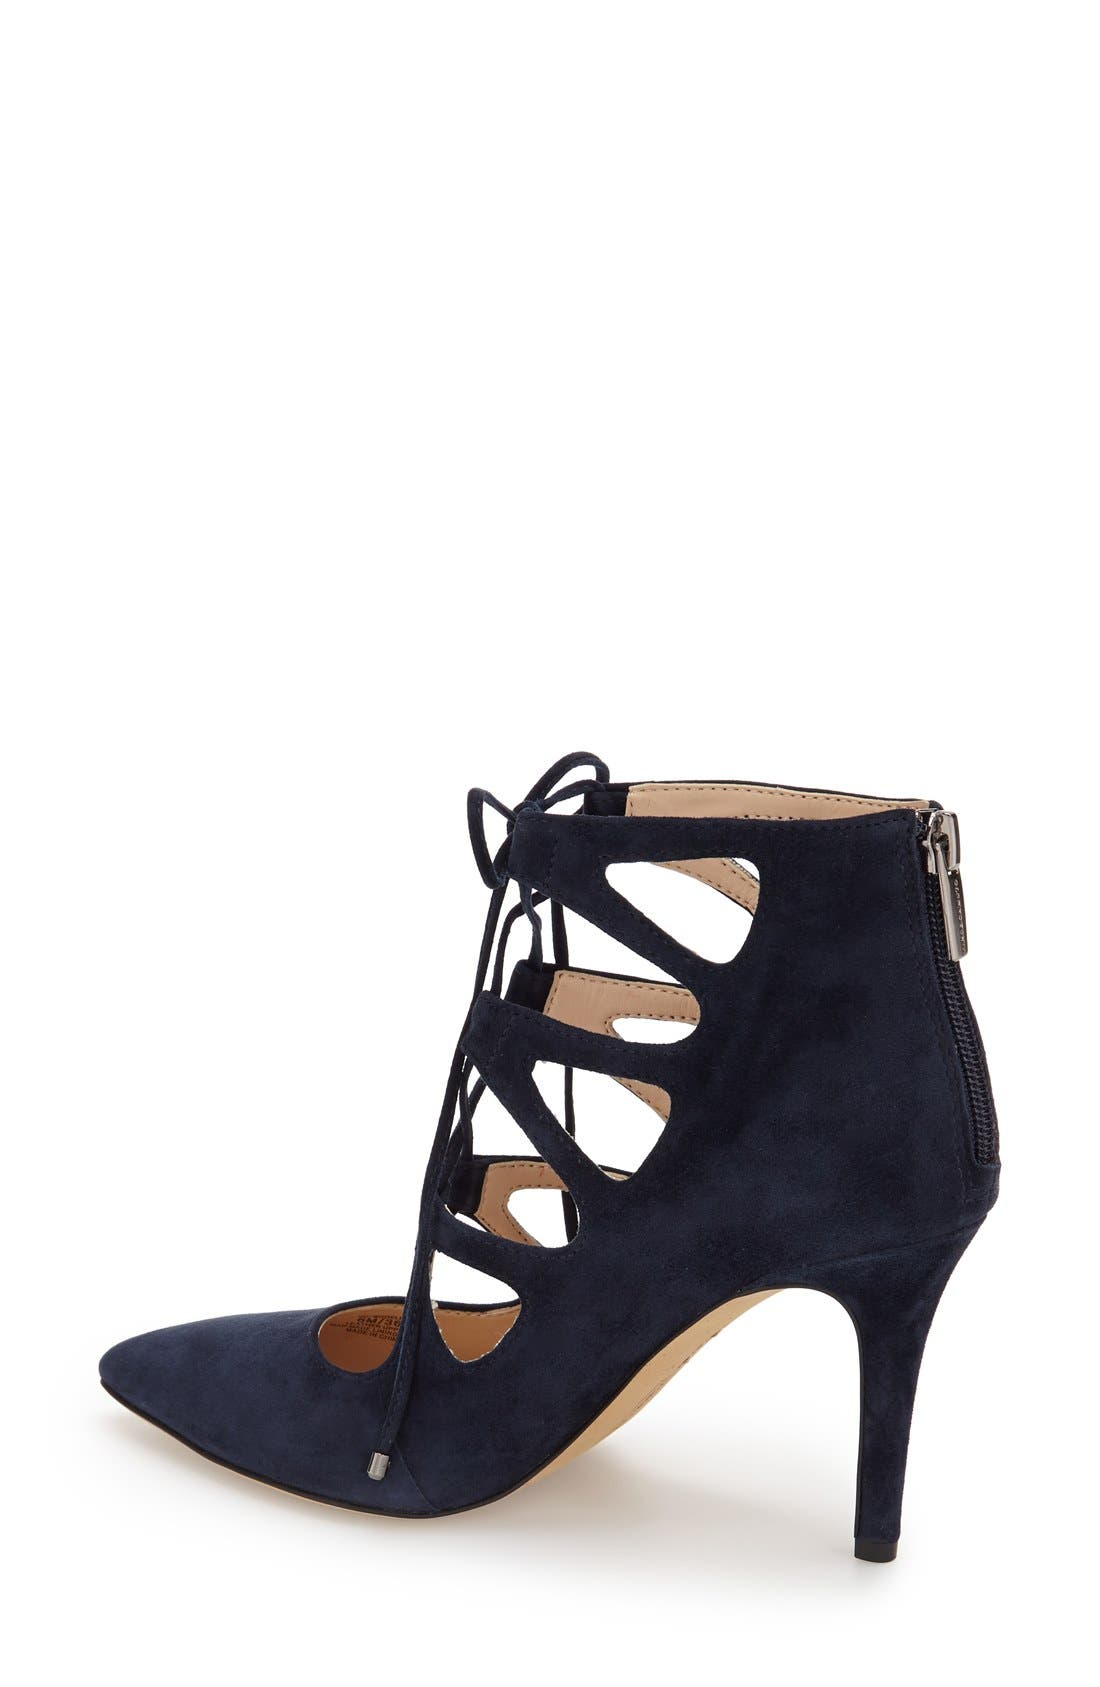 'Bodell' Lace Up Pump,                             Alternate thumbnail 9, color,